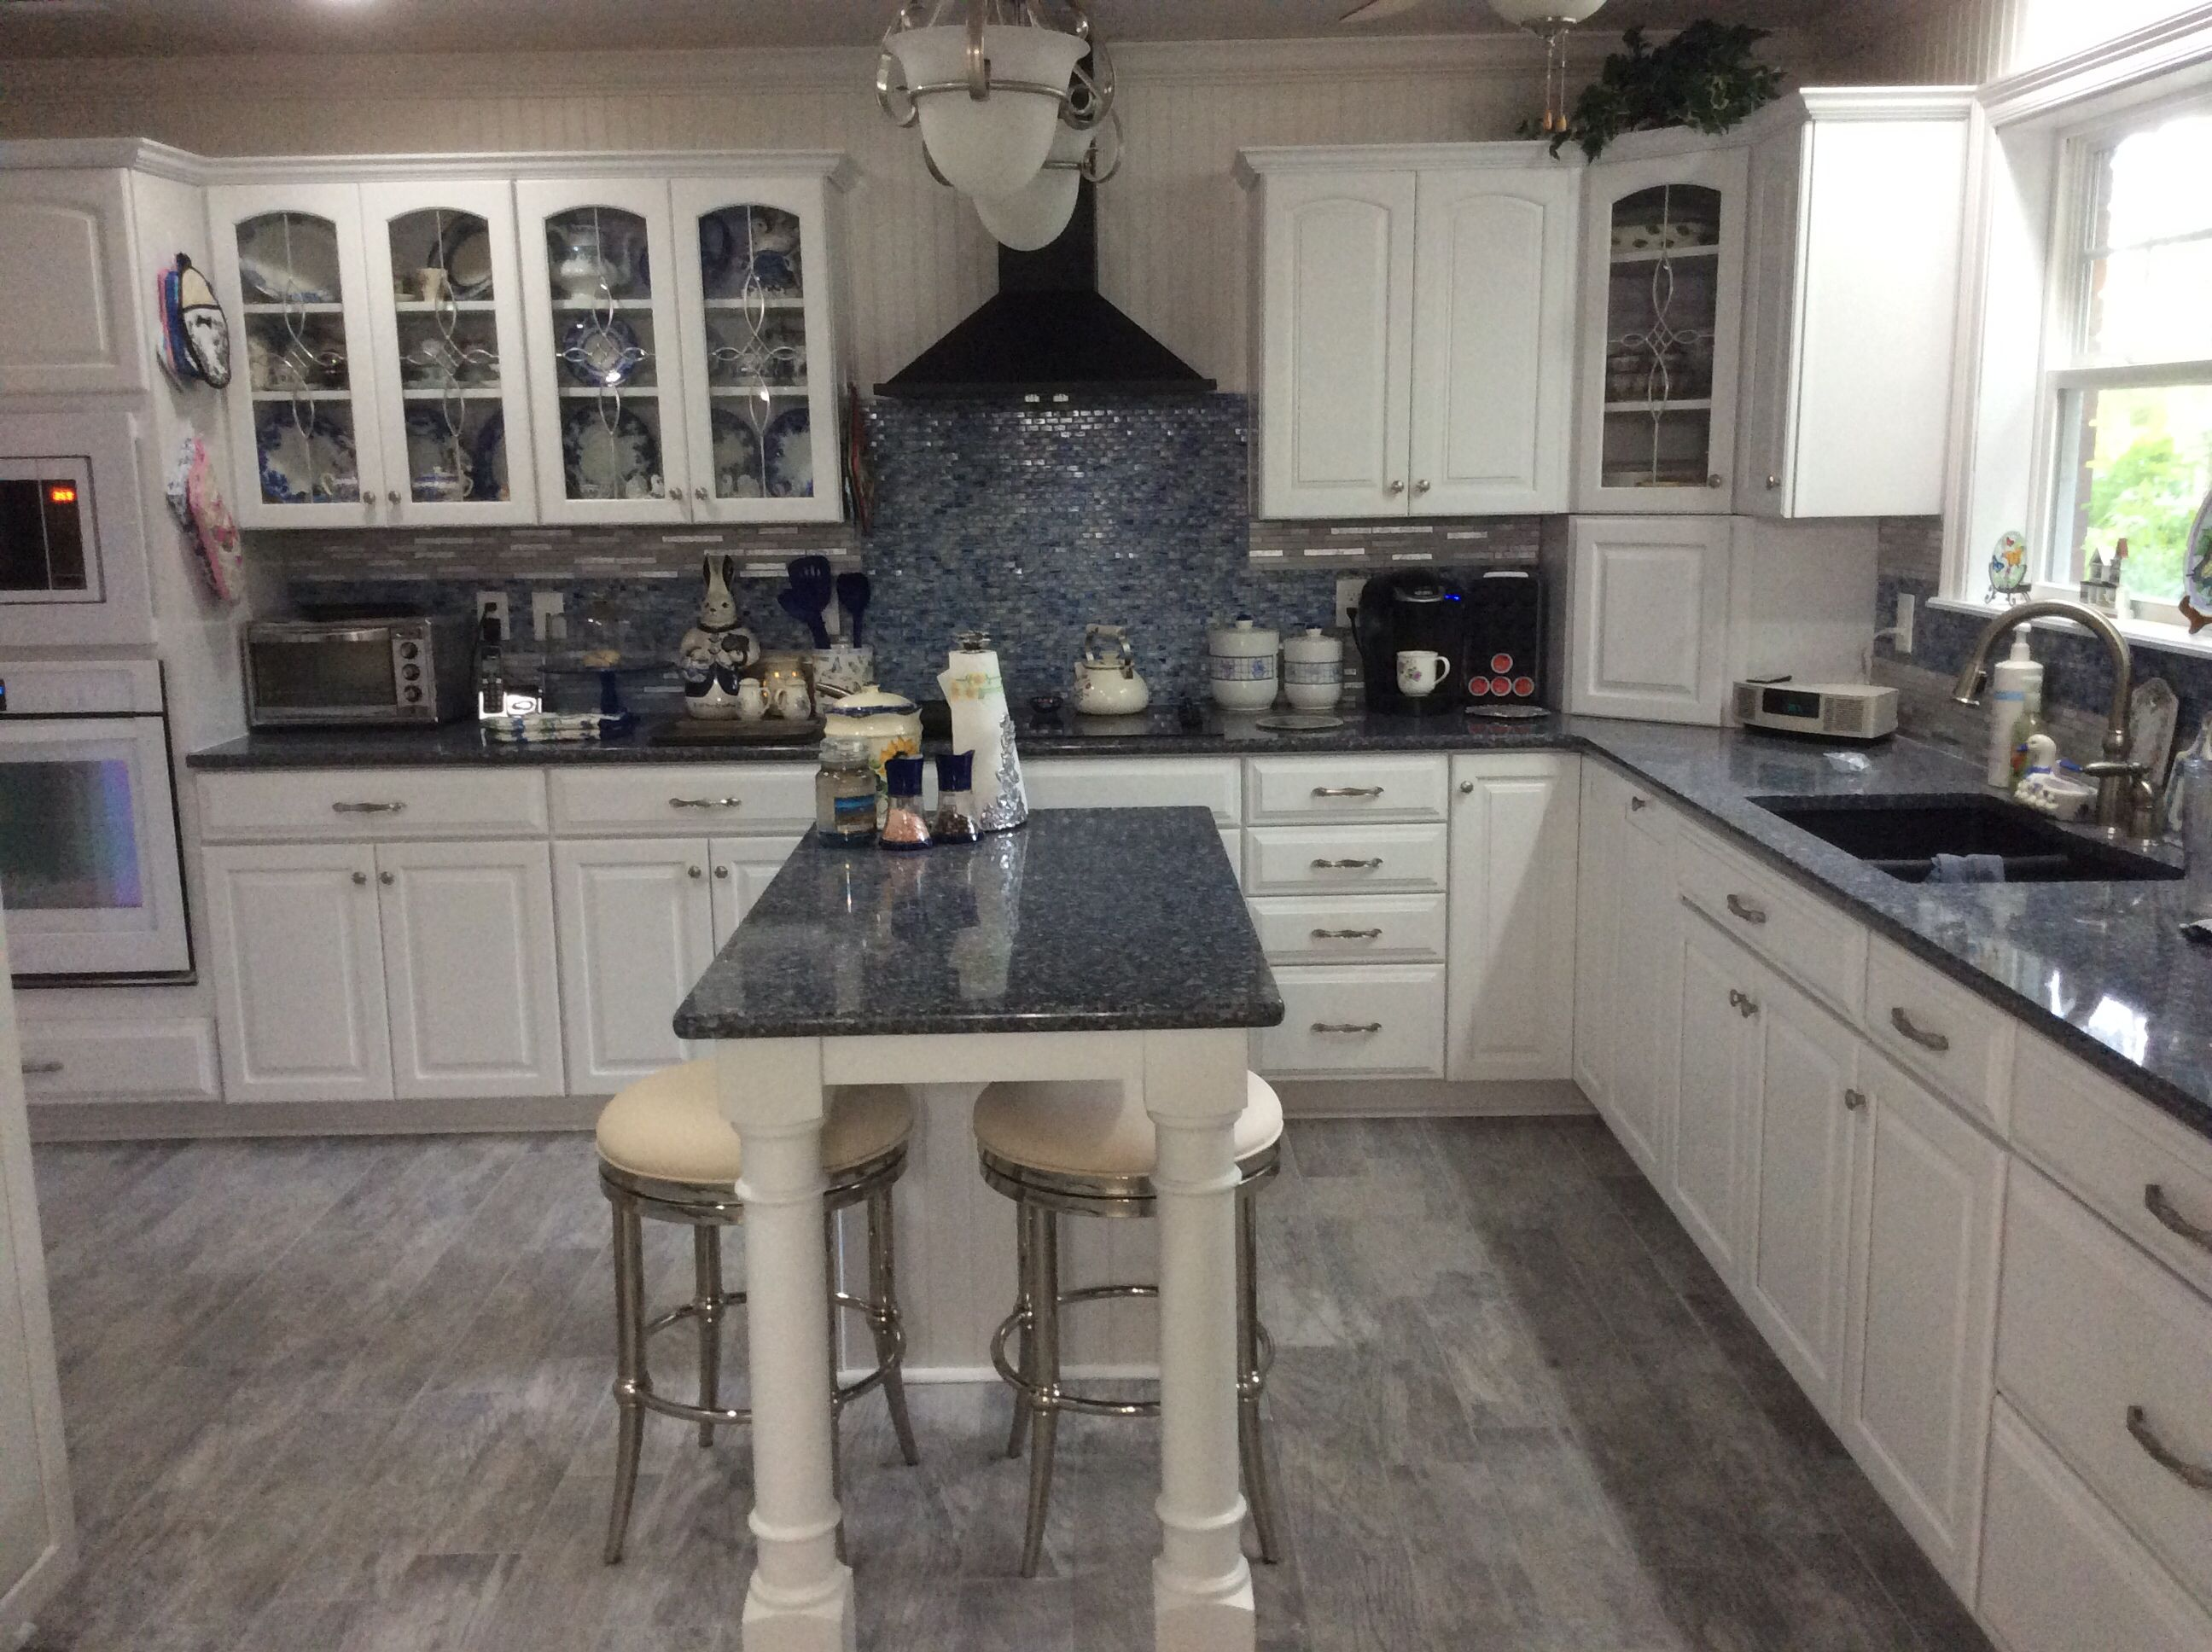 Web Photo Gallery Cambria Quartz countertop Parys Kraft maid cabinets Home Depot